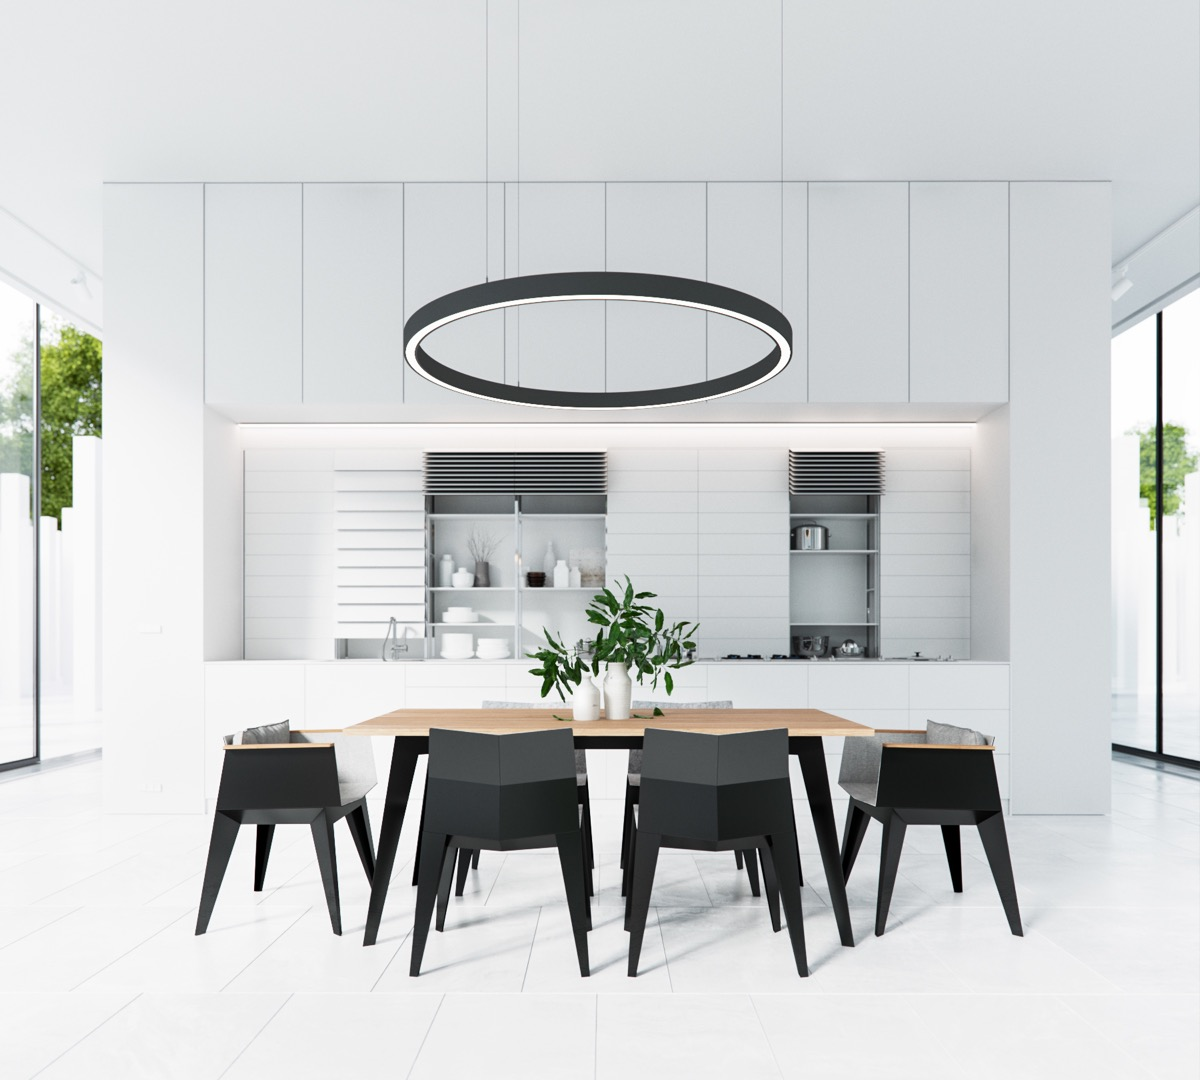 Black And White Dining Room Chairs: 40 Minimalist Dining Rooms To Leave You Hungry For Style